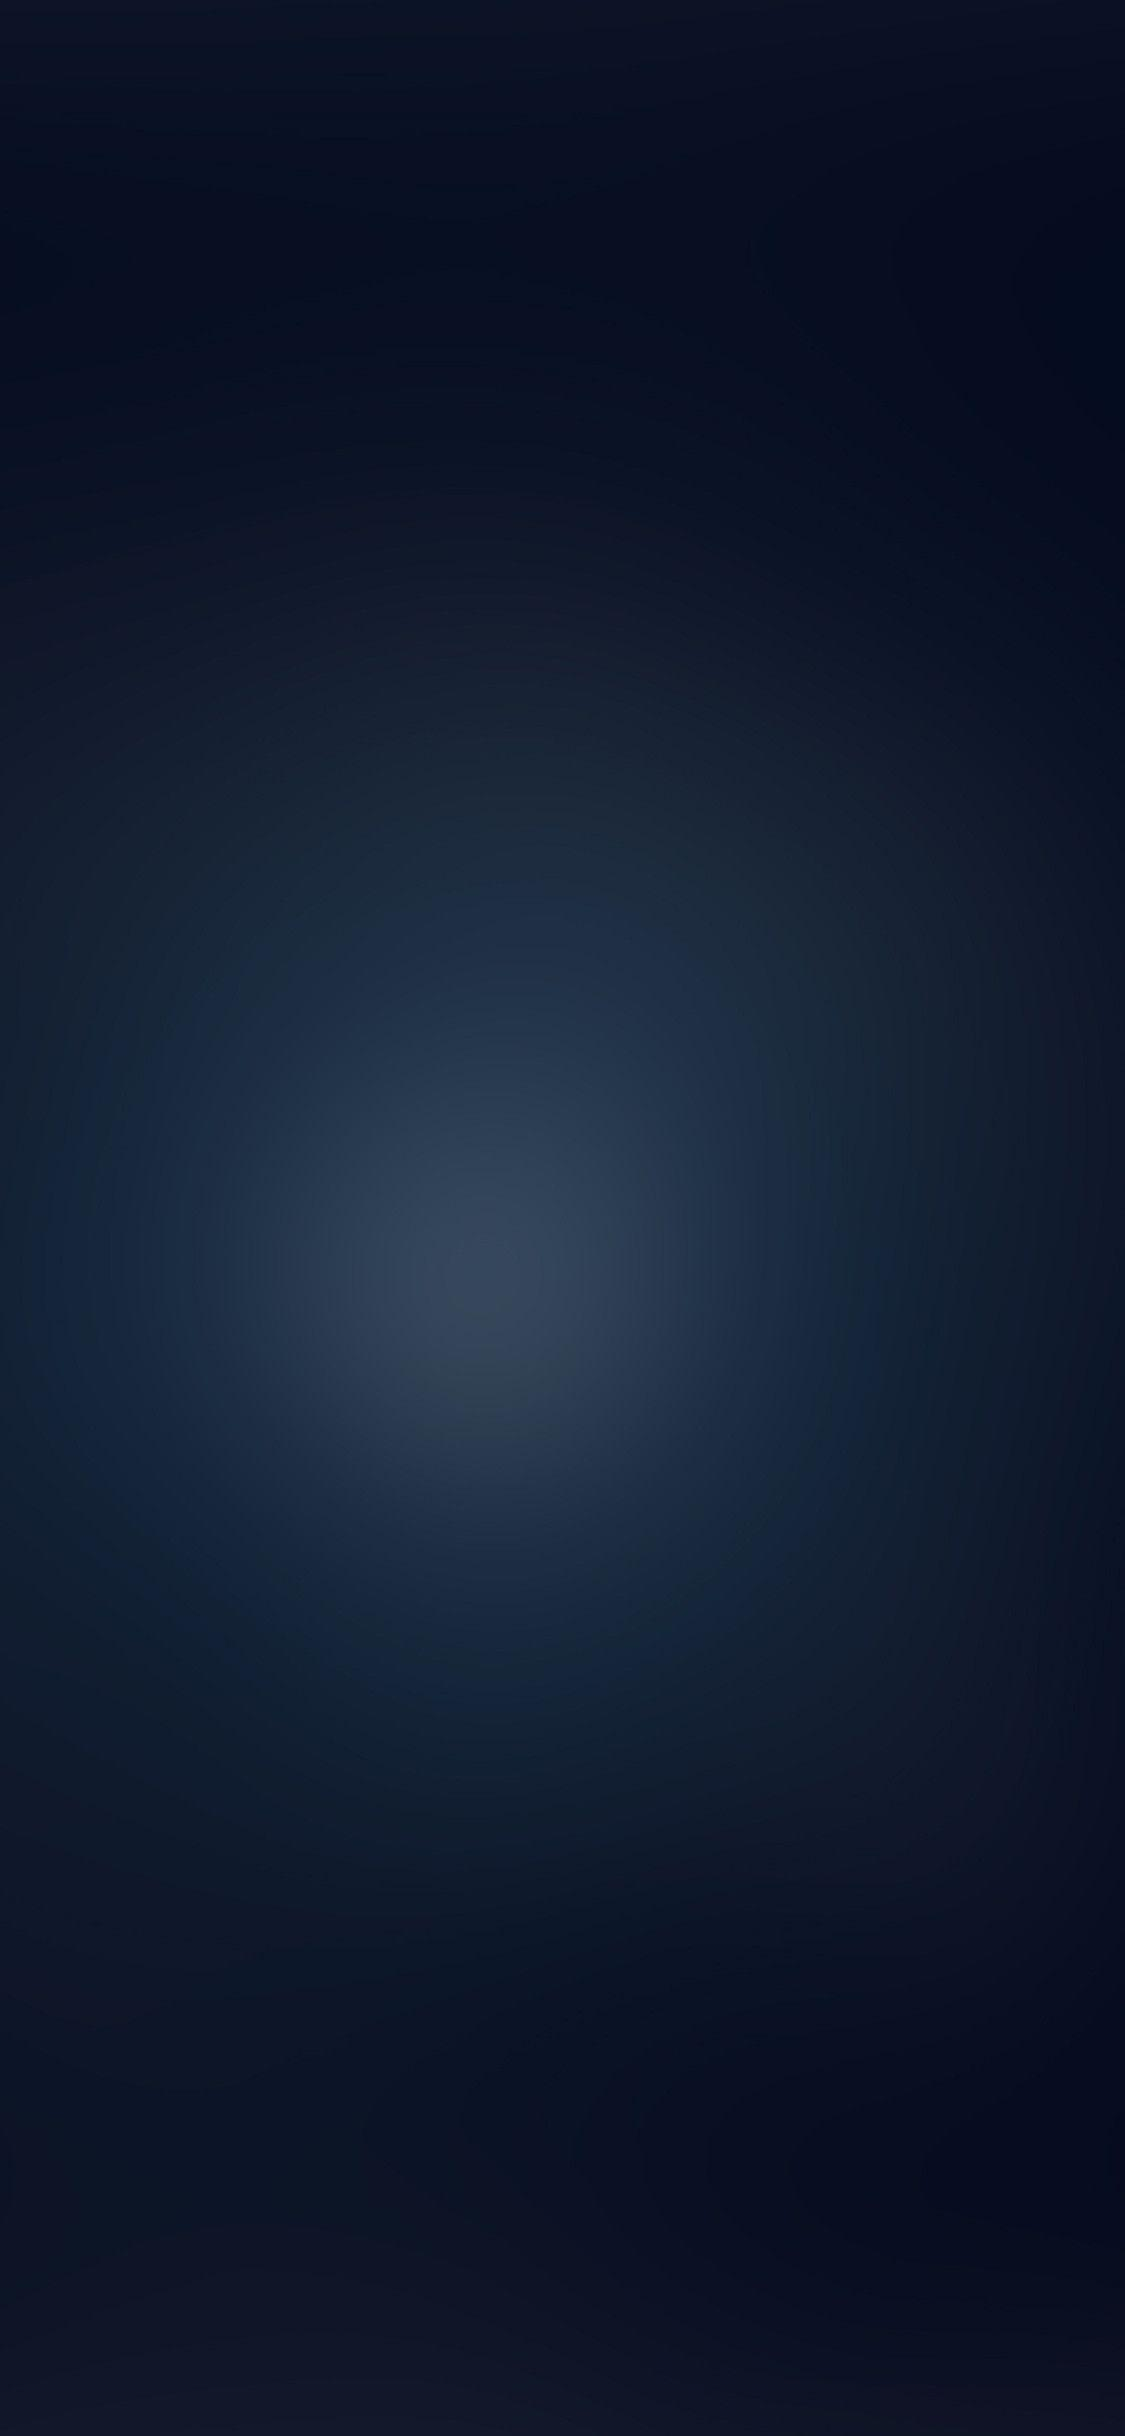 Iphone Logo Hd Dark Blue Wallpapers Wallpaper Cave